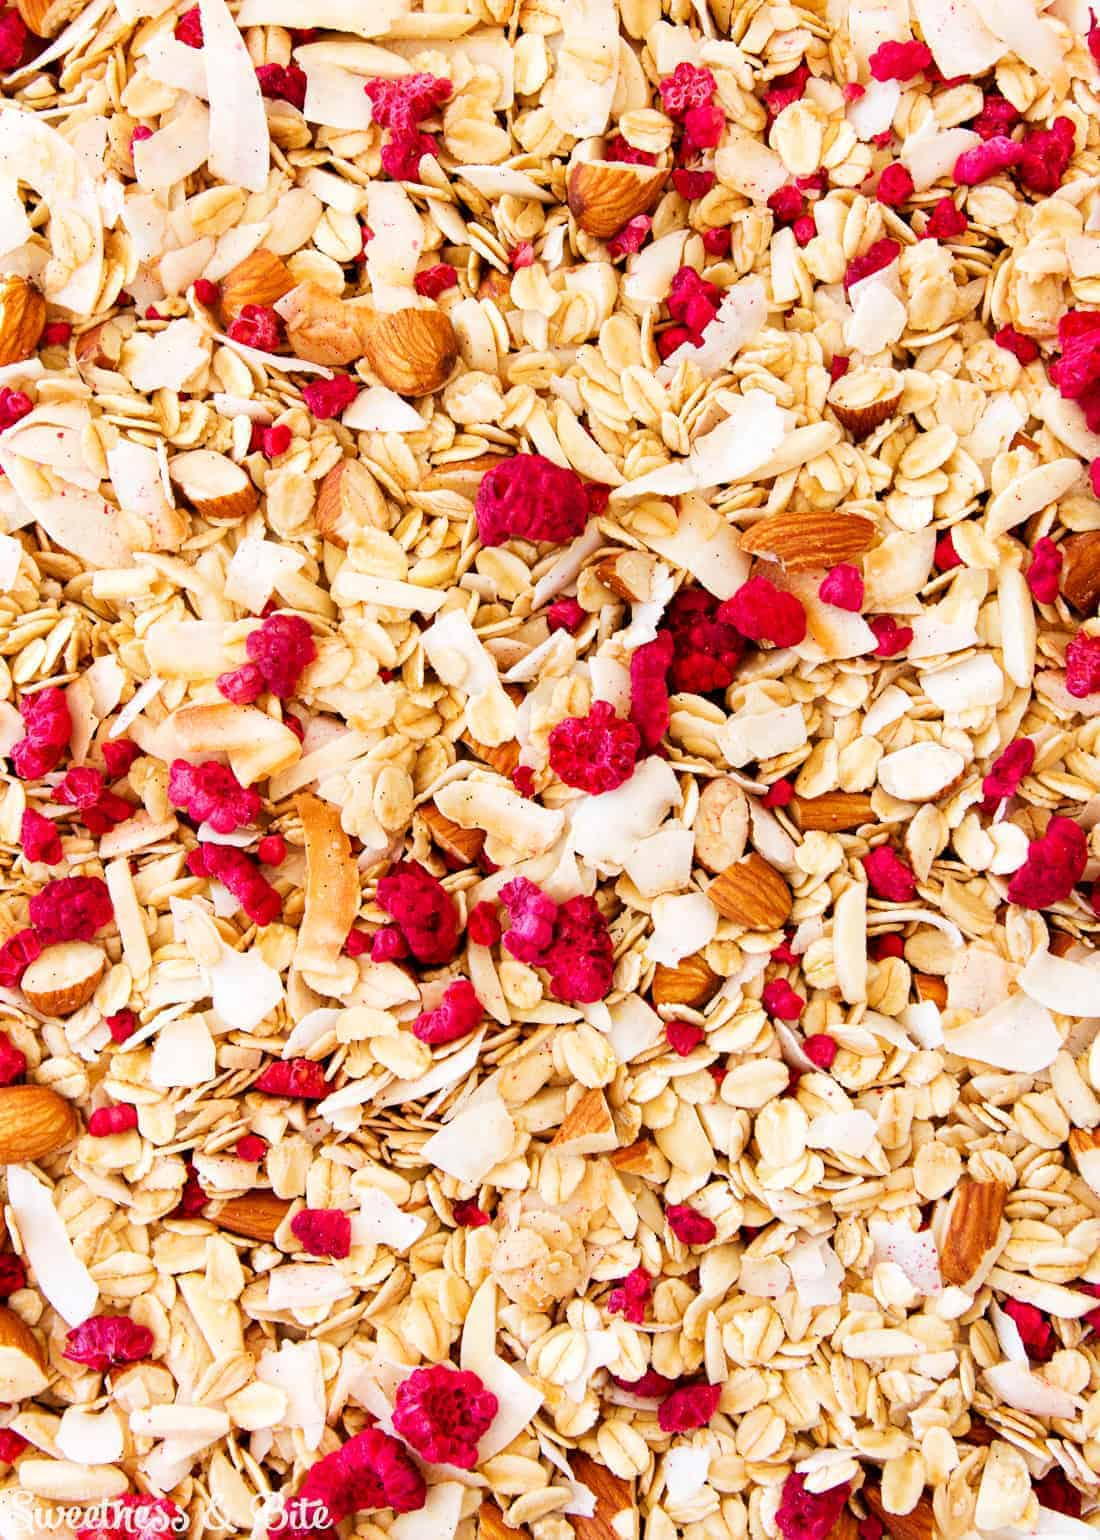 Almond, Coconut and Raspberry Meusli (aka Granola) ~ Sweetness & Bite